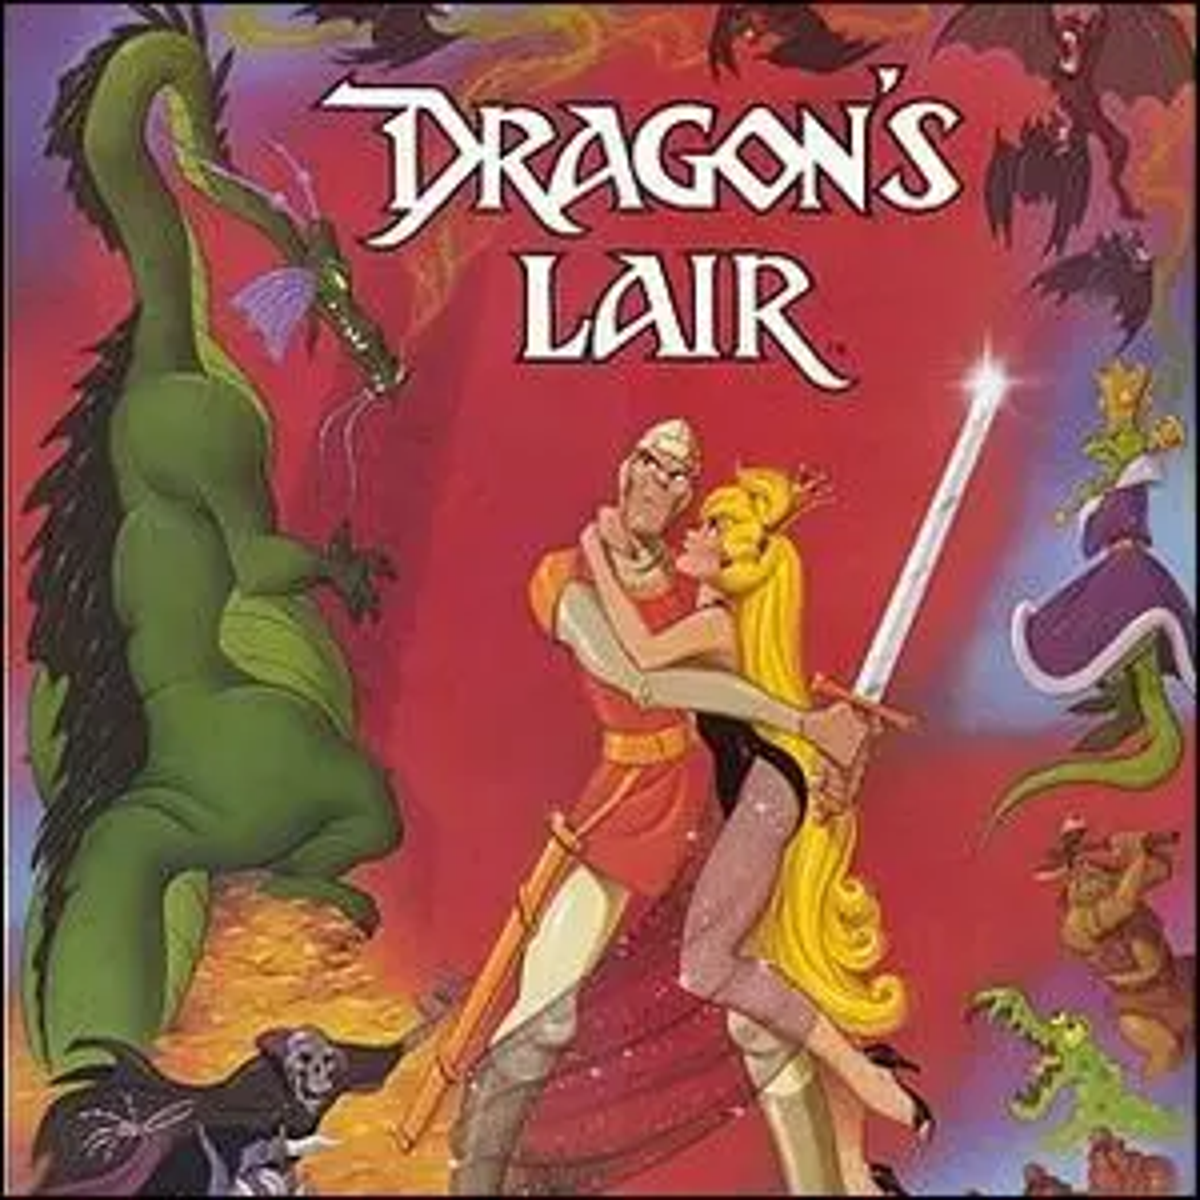 The promotional poster artwork for the video game Dragon's Lair.